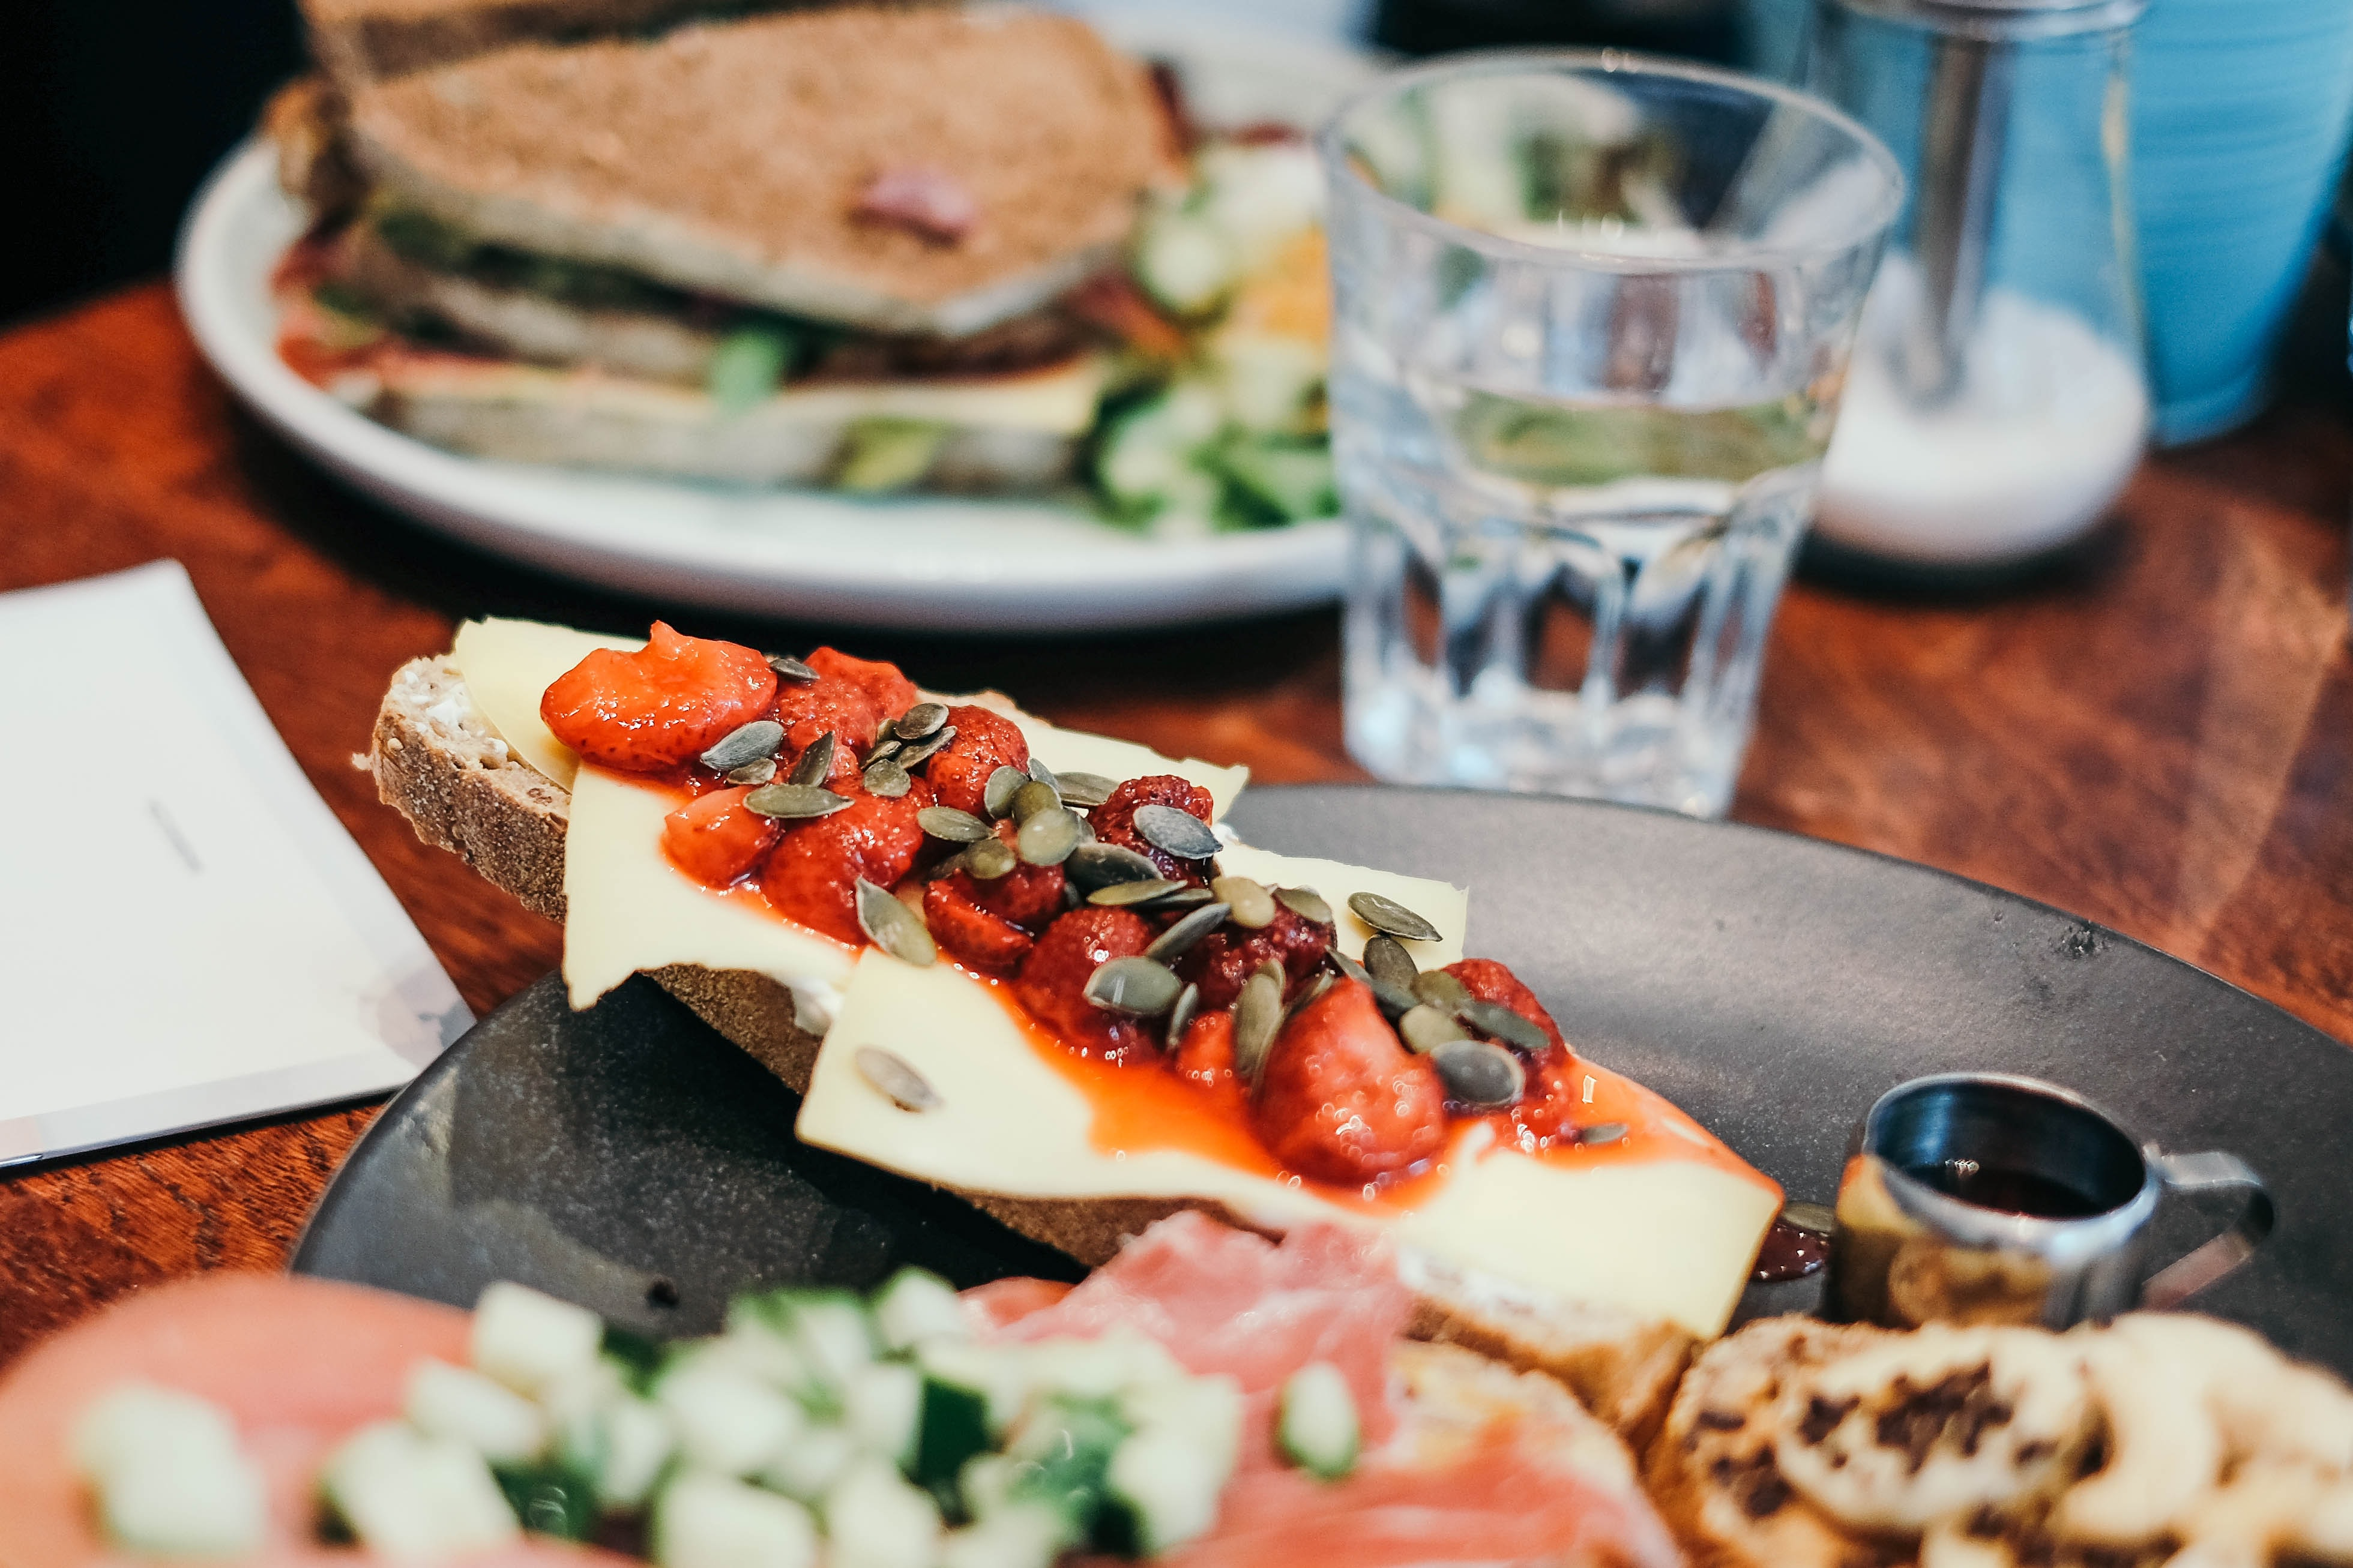 Make lunch your main meal, Travel to Europe on a budget